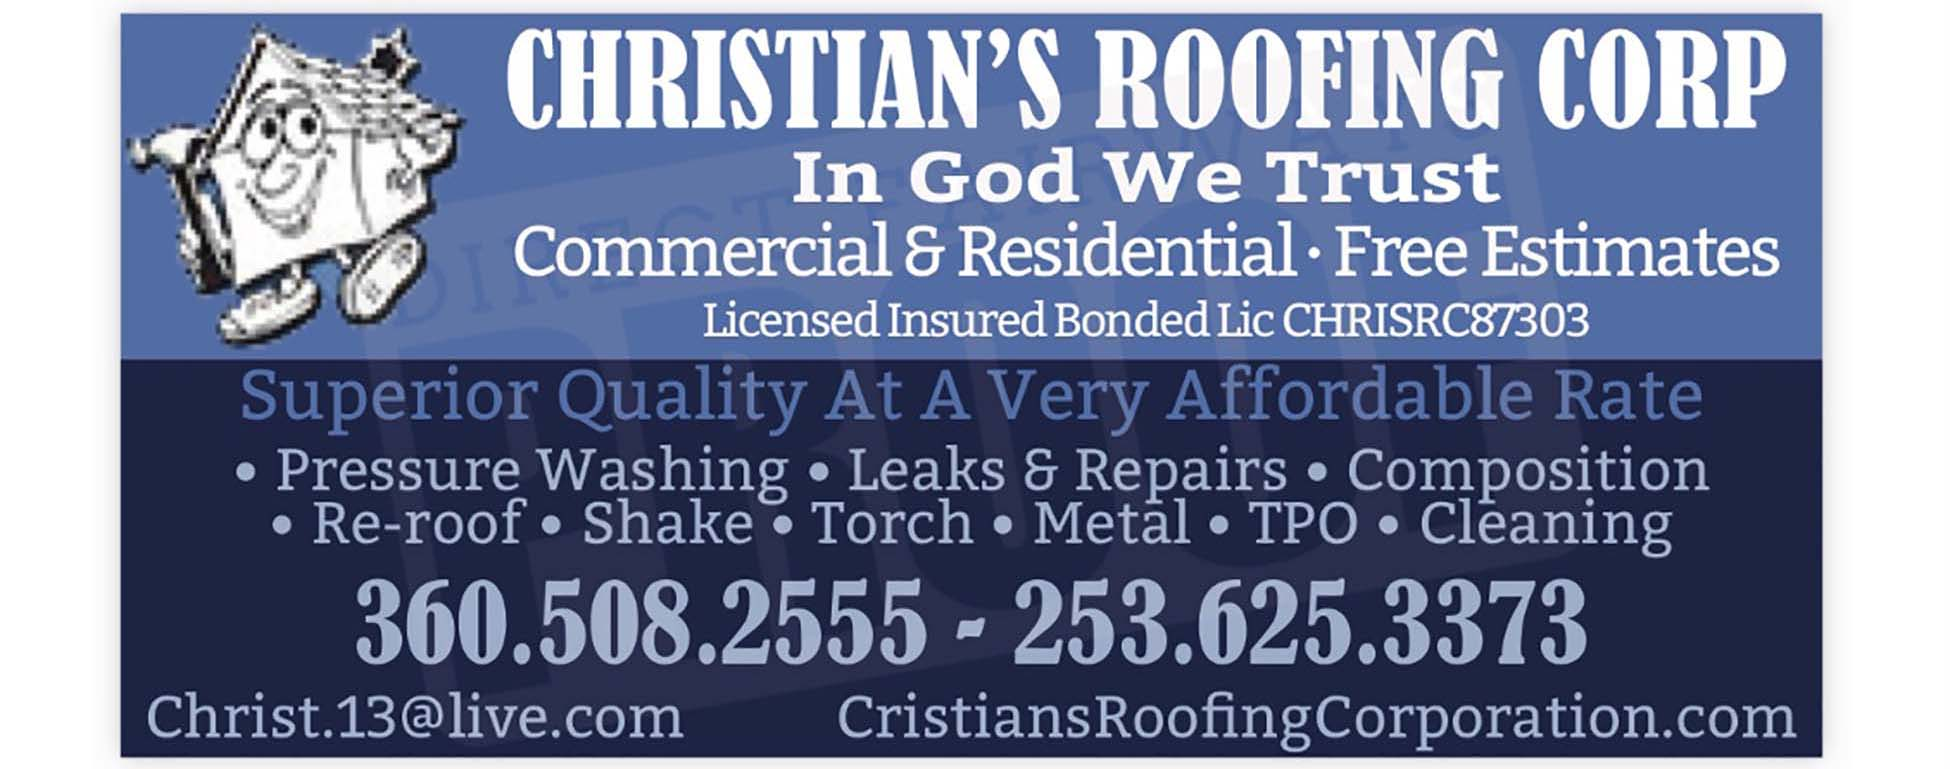 Christian's Roofing Corp